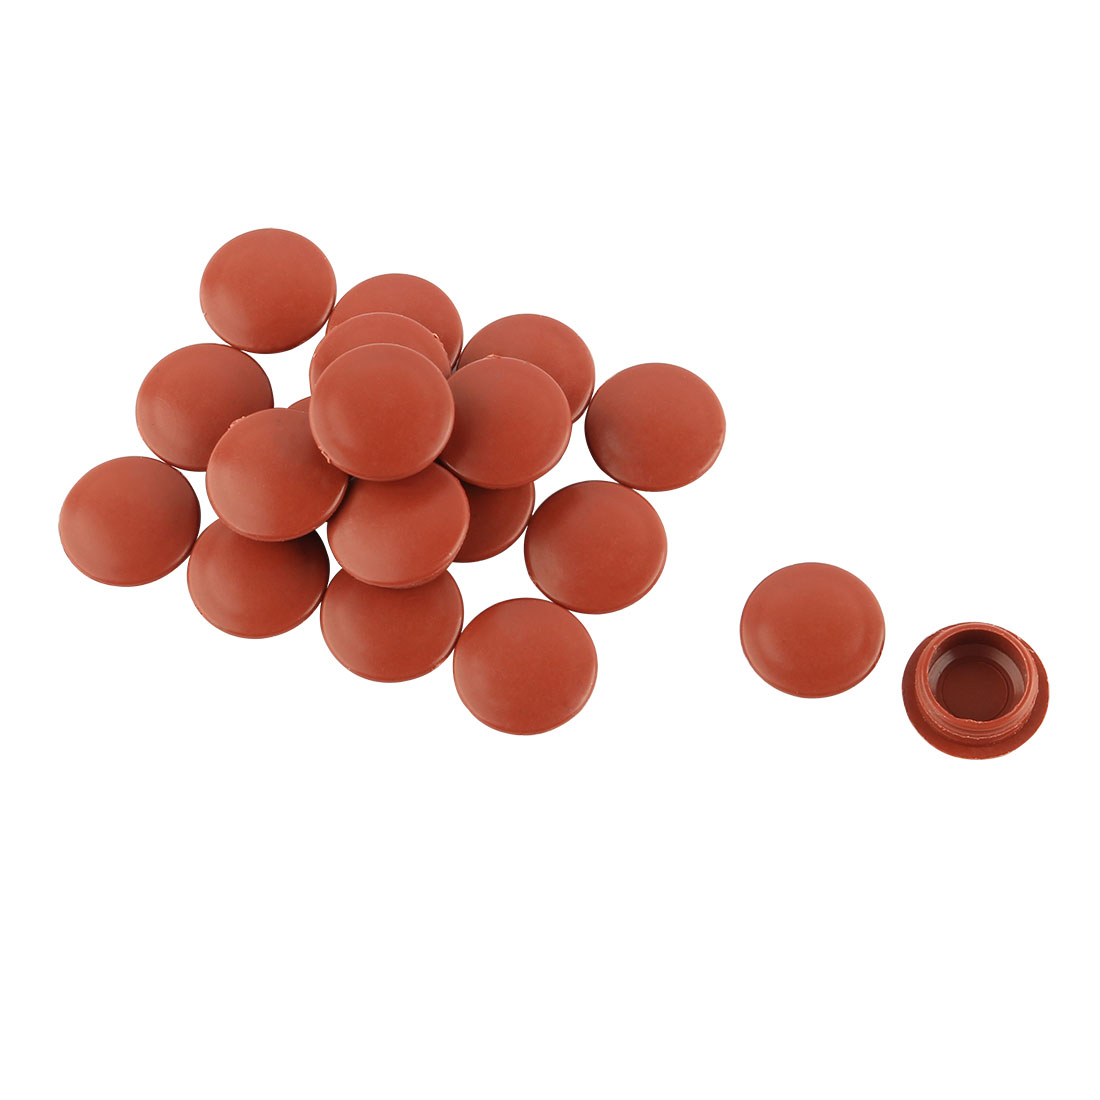 Plastic Round Furniture Legs Hole End Cap Cover Pipe Tube Inserts 16mm Dia 20pcs